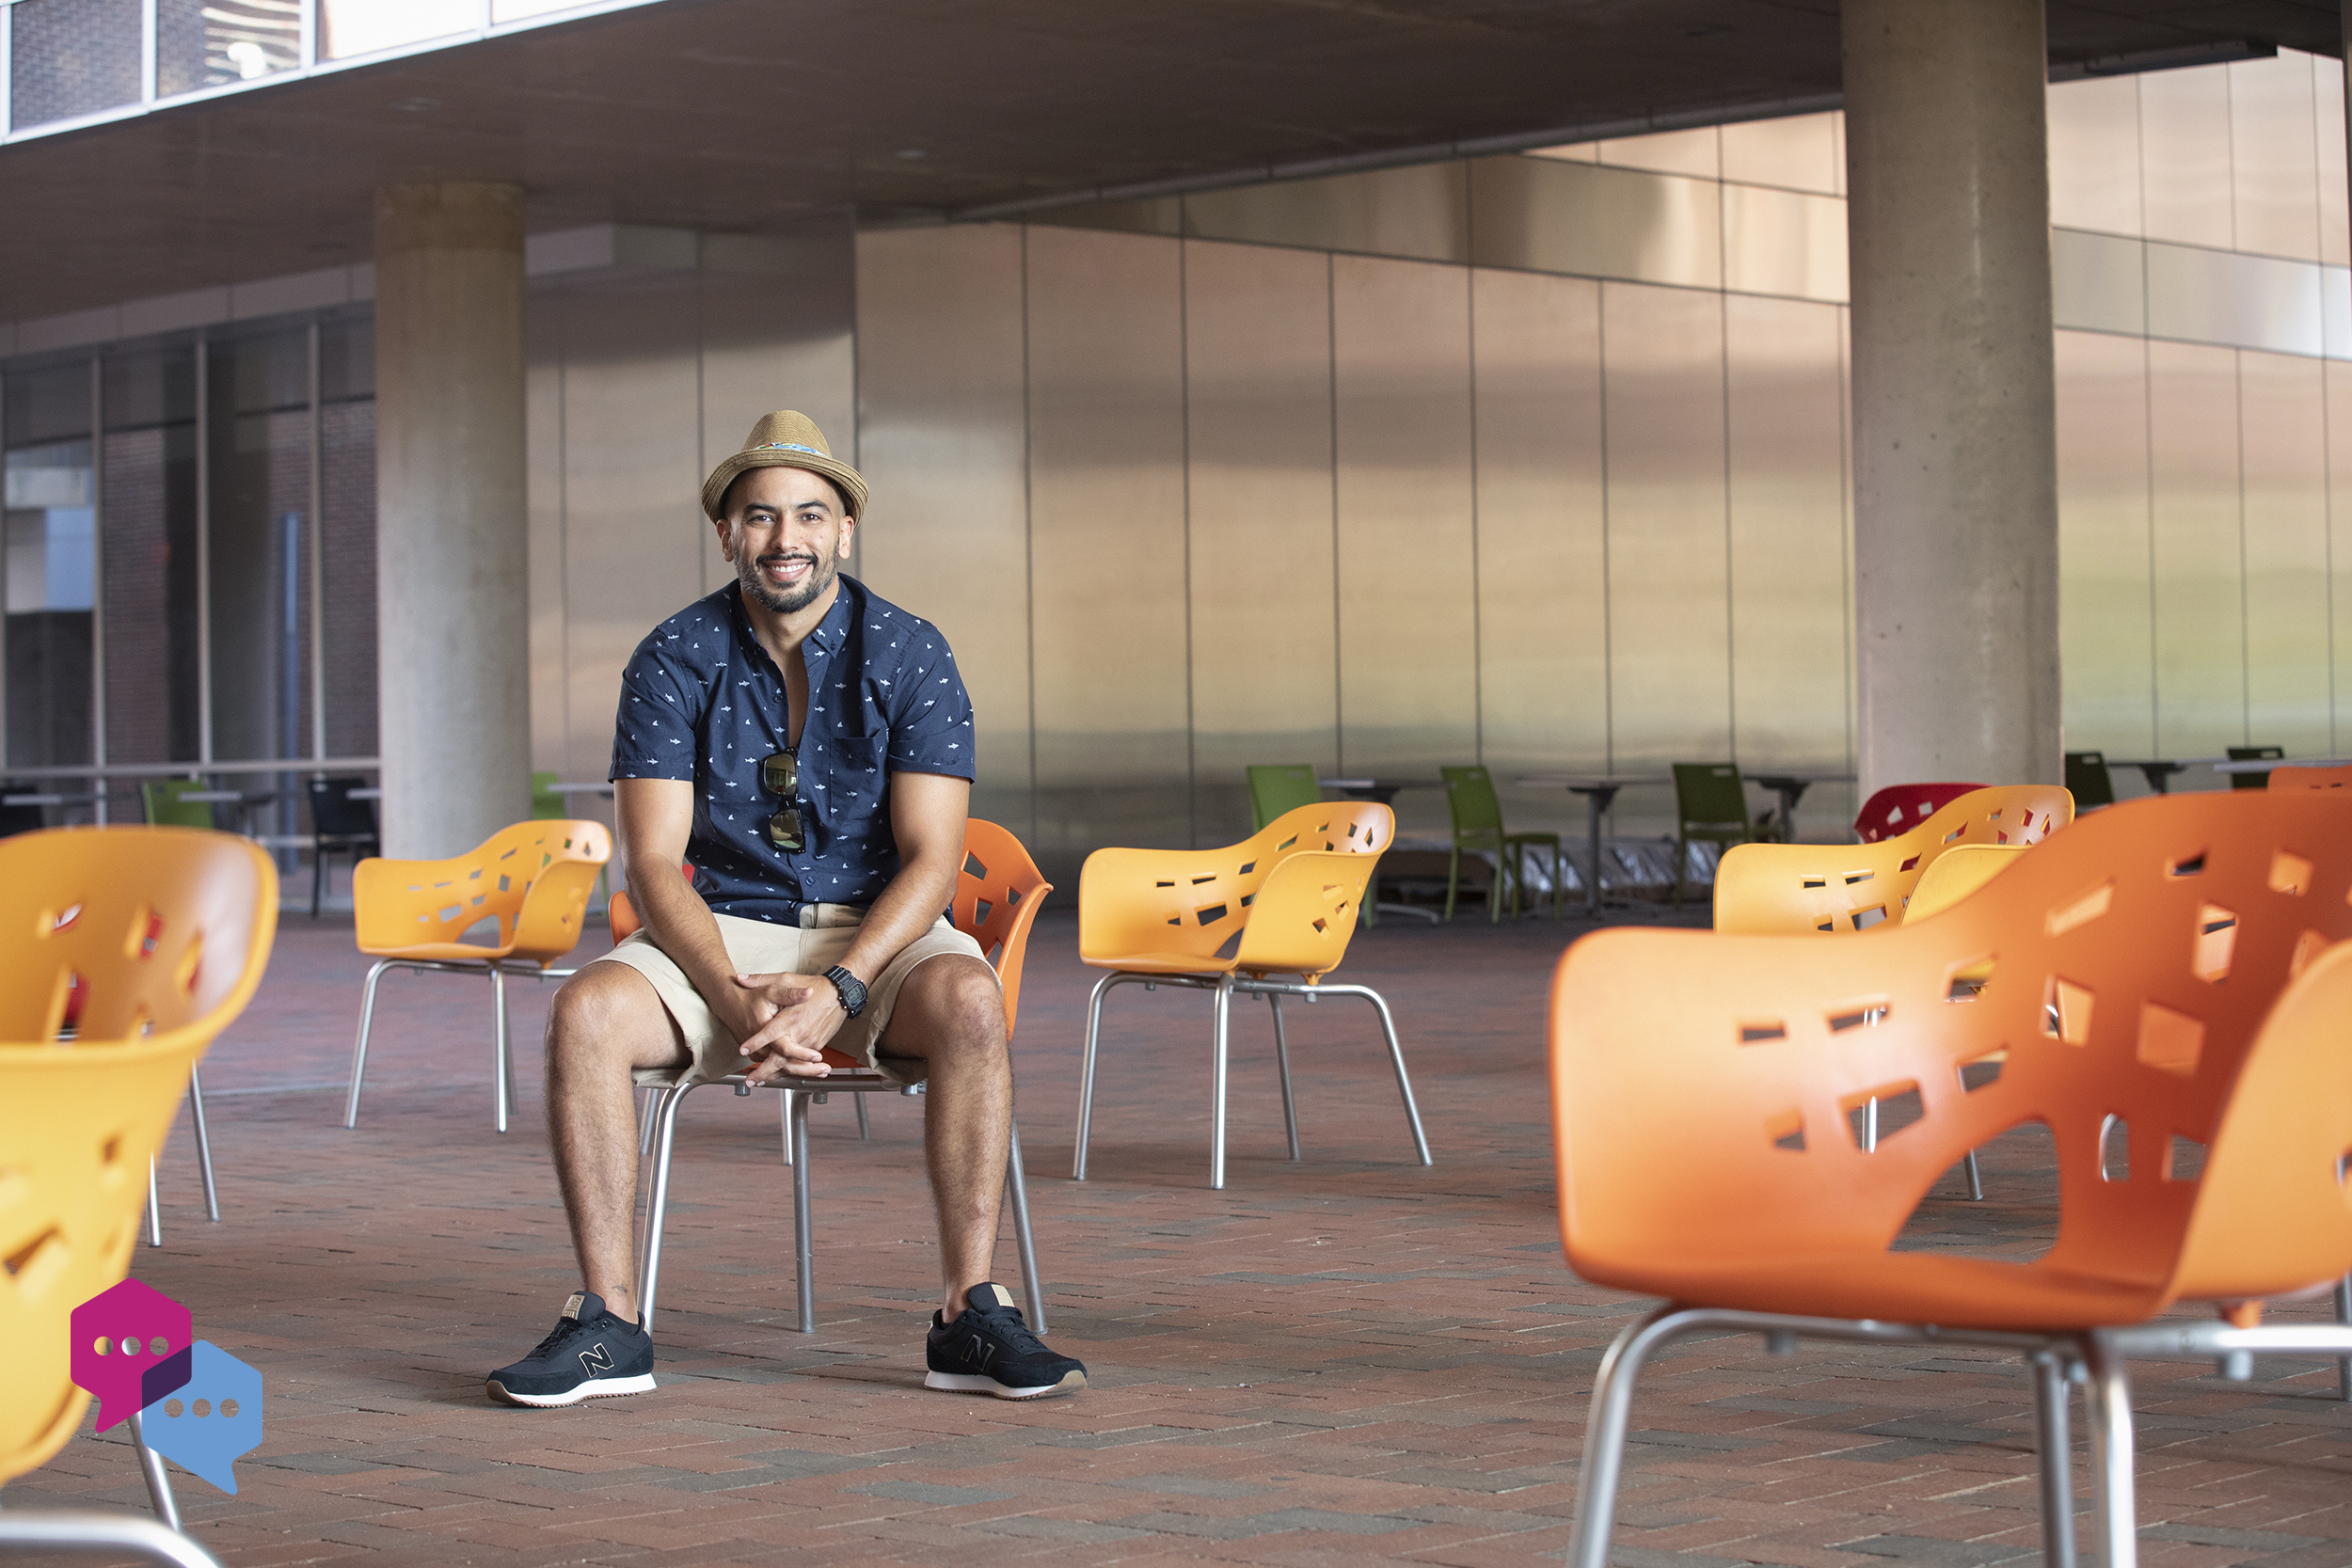 Esteban Agudo sits in a orange chair in the quad of the Genome Sciences Building